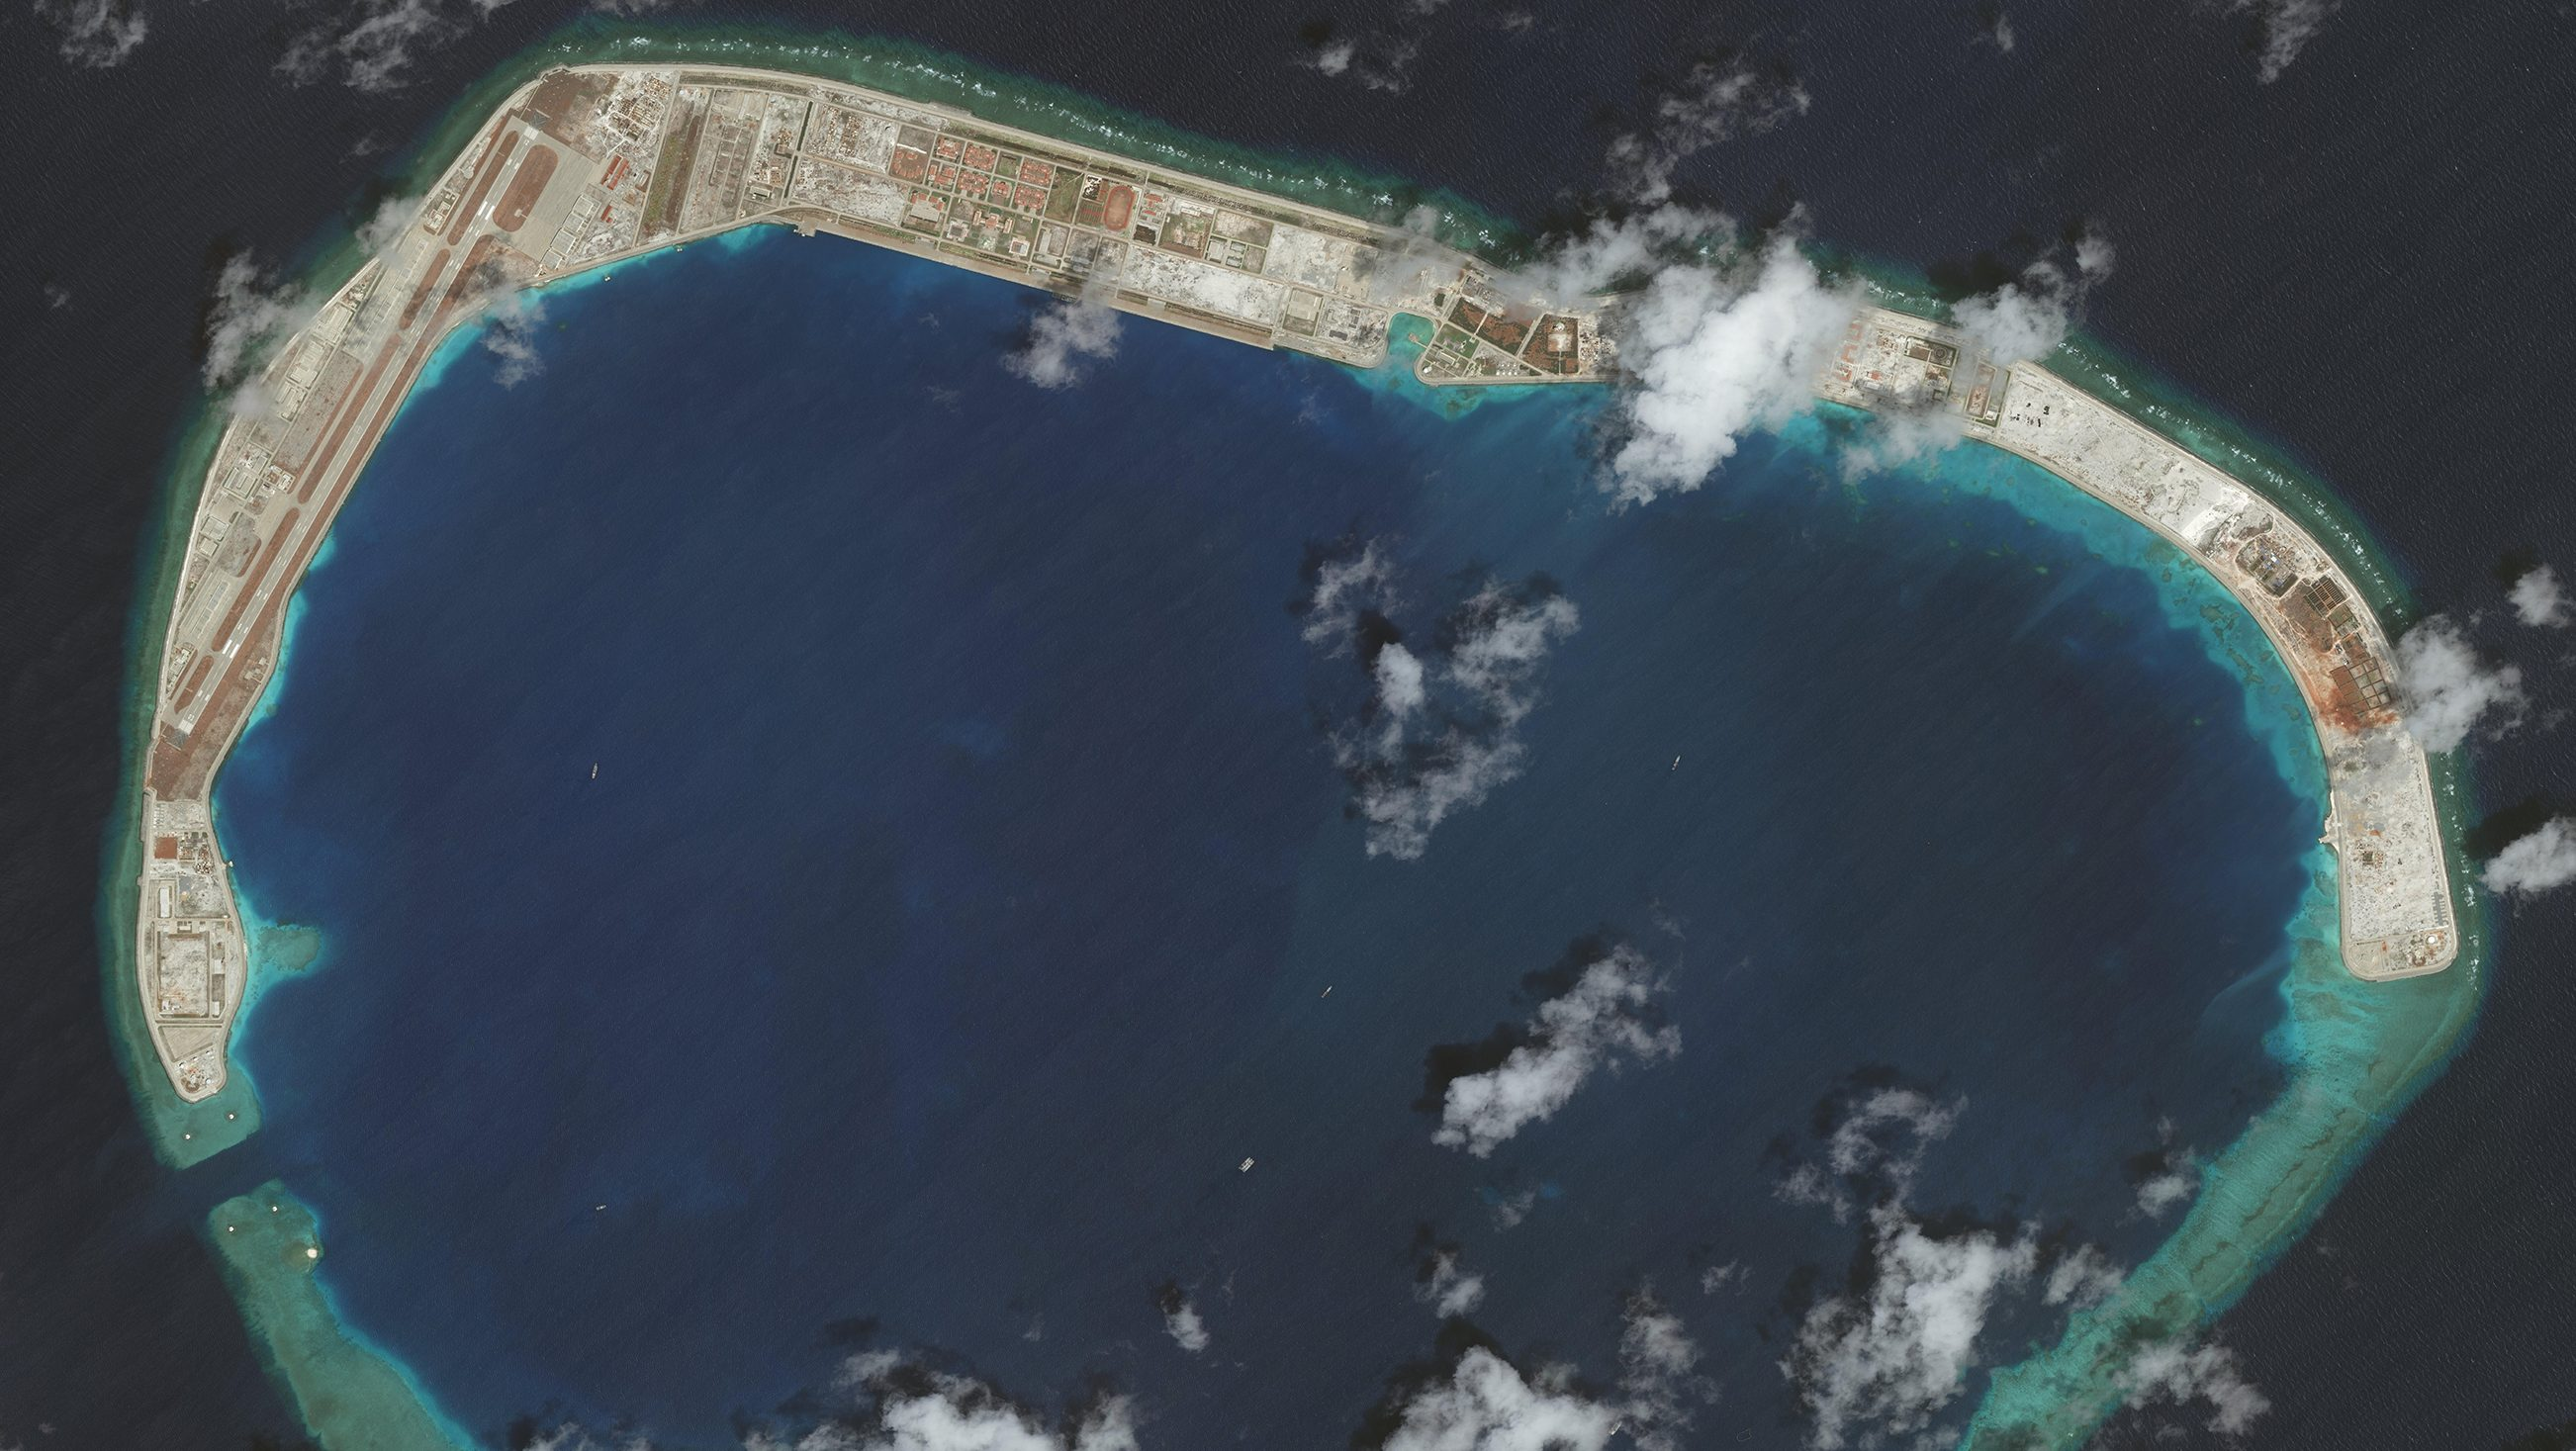 South China Sea, Mischief Reef